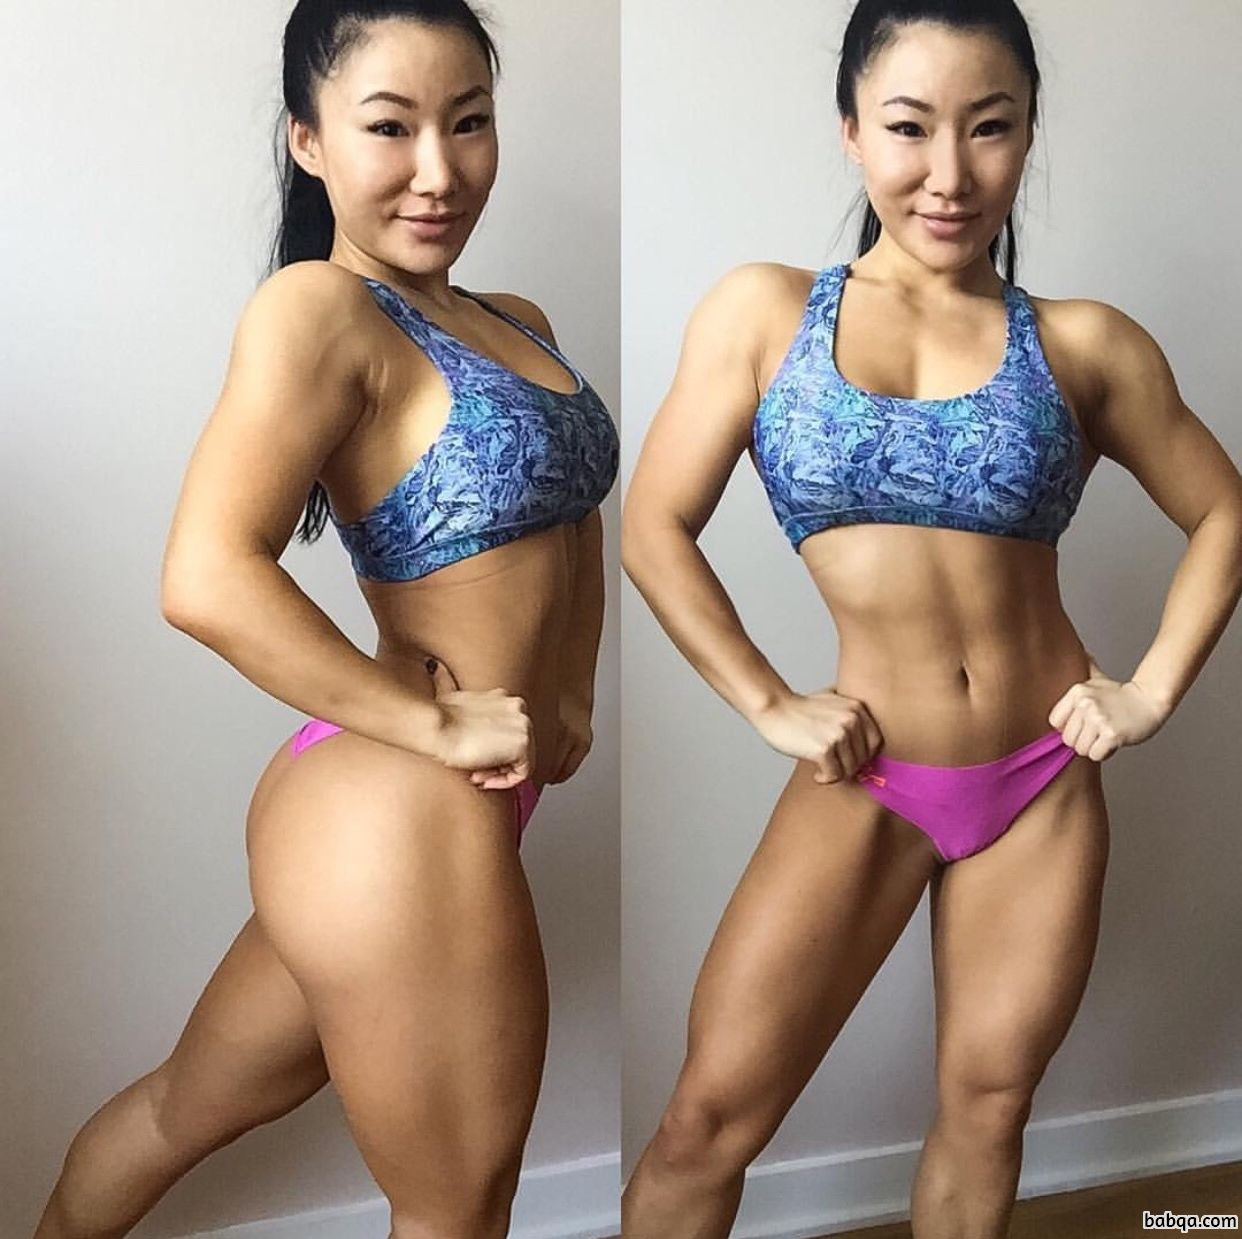 the perfect ass and tits repost from womenfitnessmodels – ass click